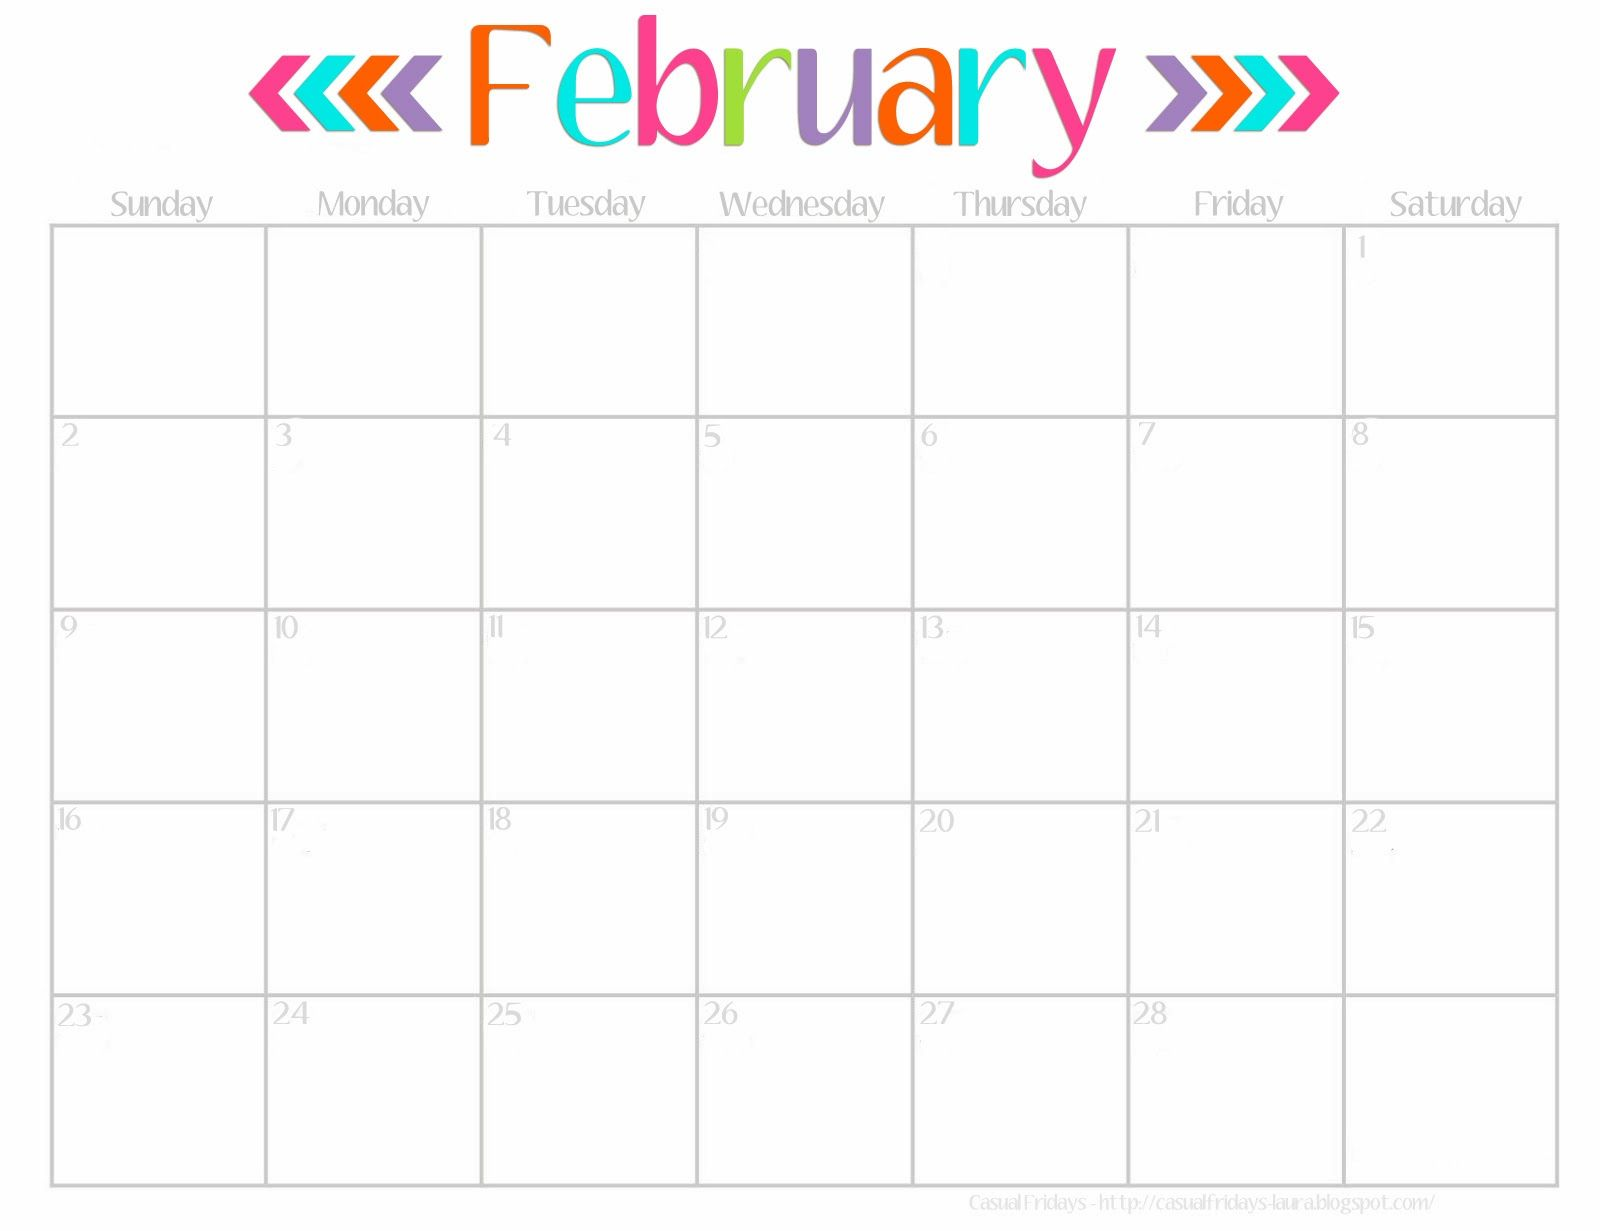 february calendar calendar printable and 2015 calendar on pinterest